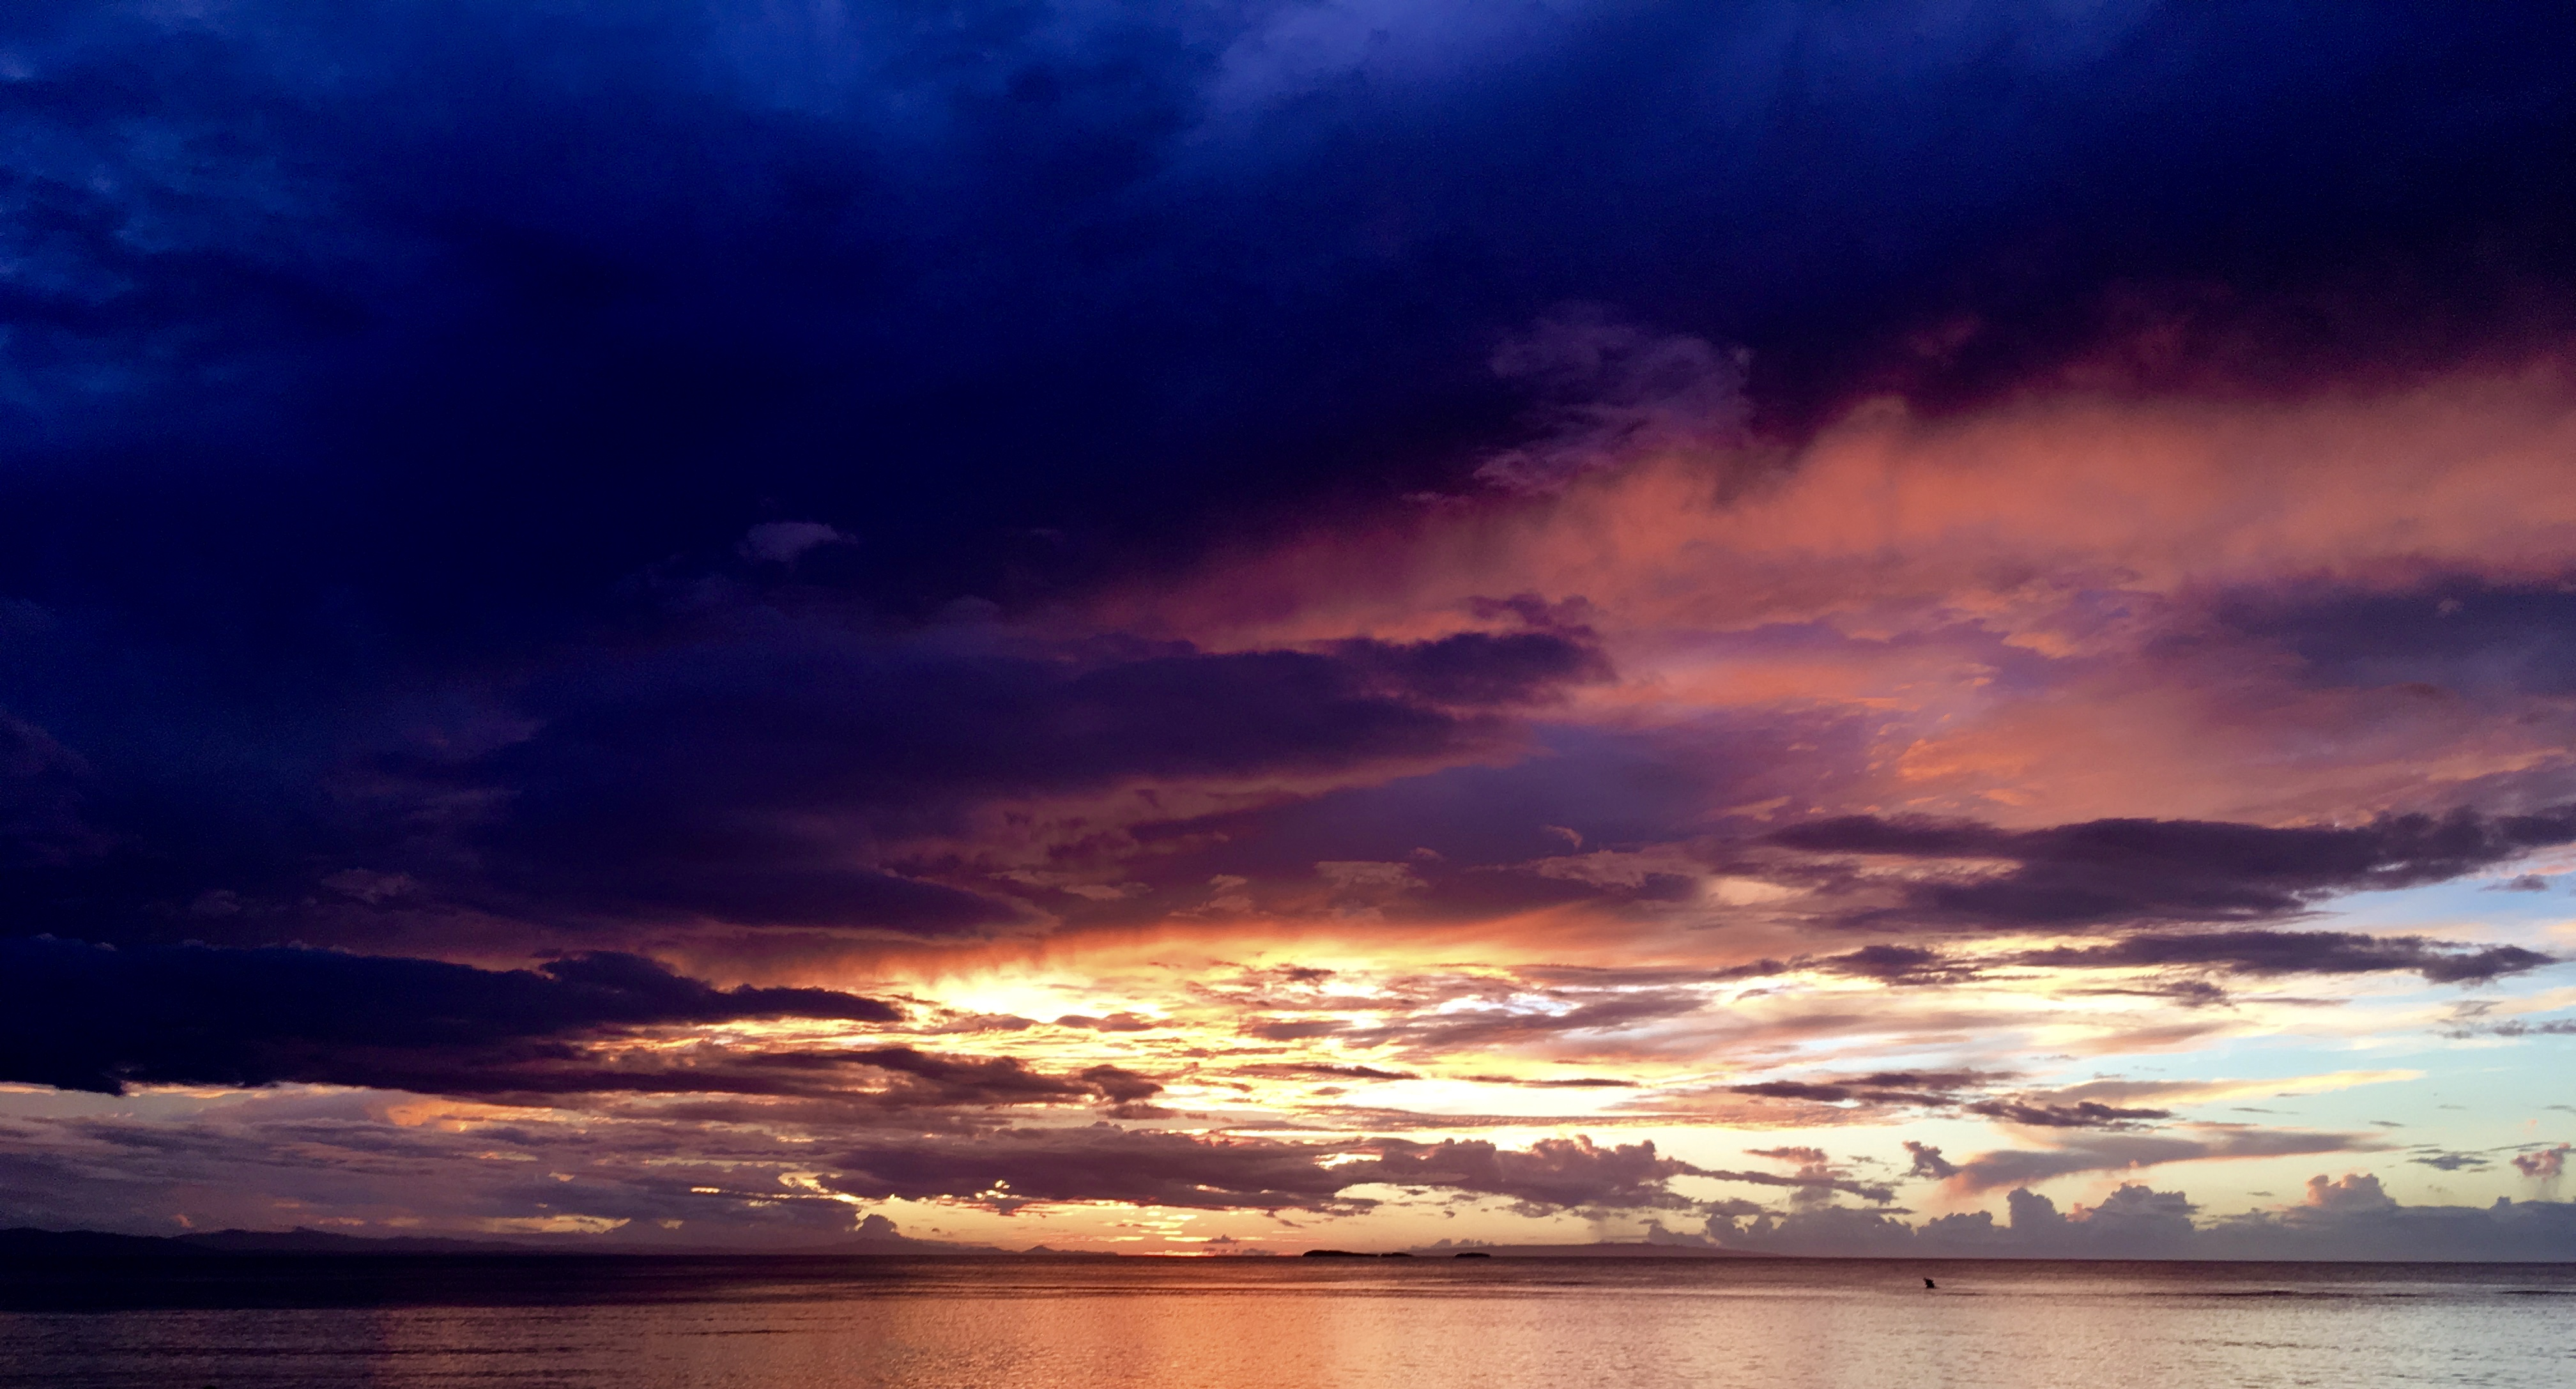 A photo of a sunset with dark purple clouds on top, leading into yellow and orange clouds by the sea.